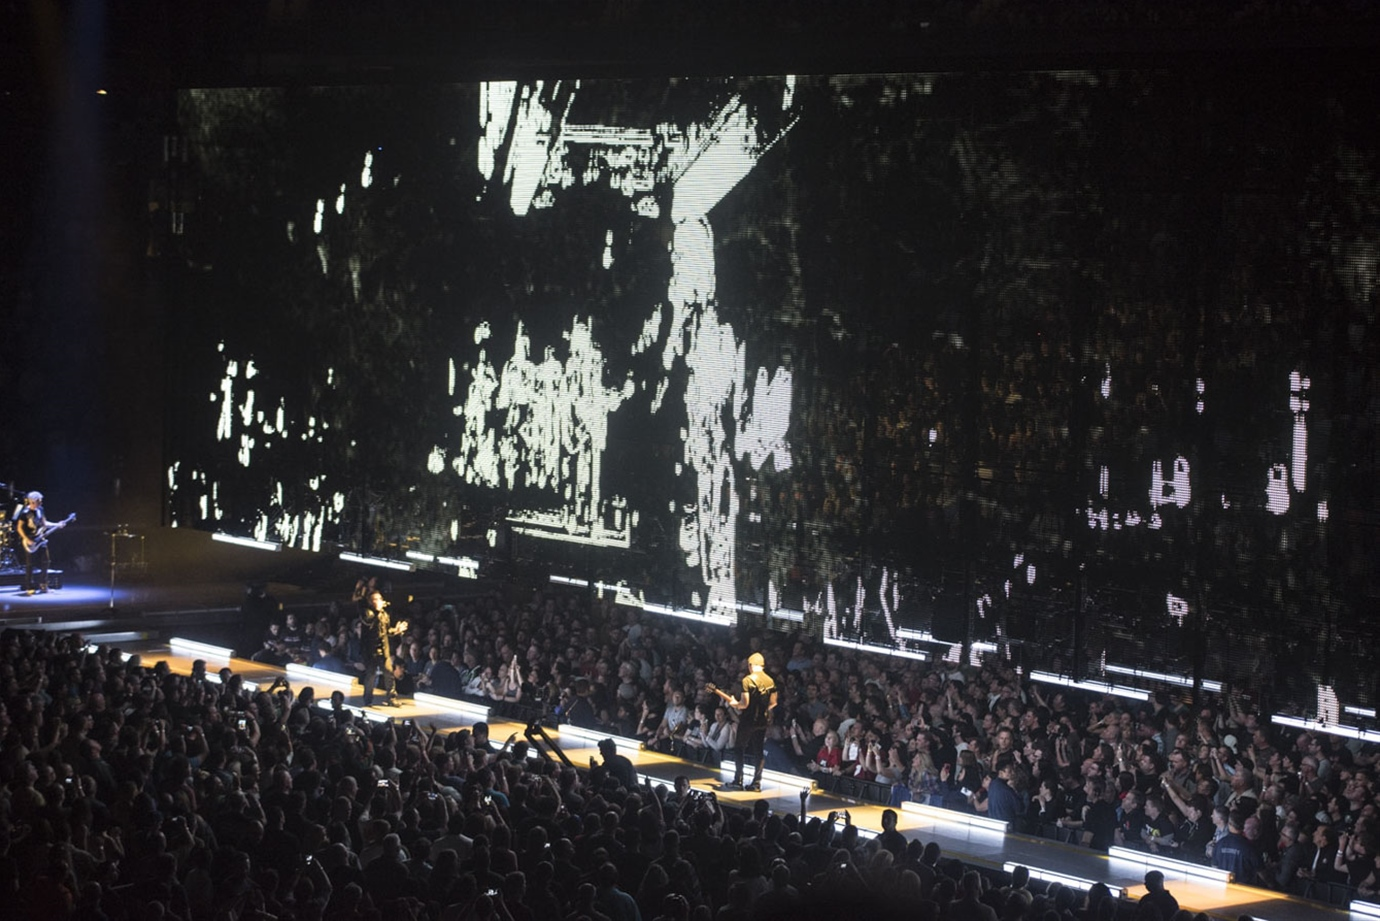 Images of U2: INNOCENCE + EXPERIENCE | 1380x921